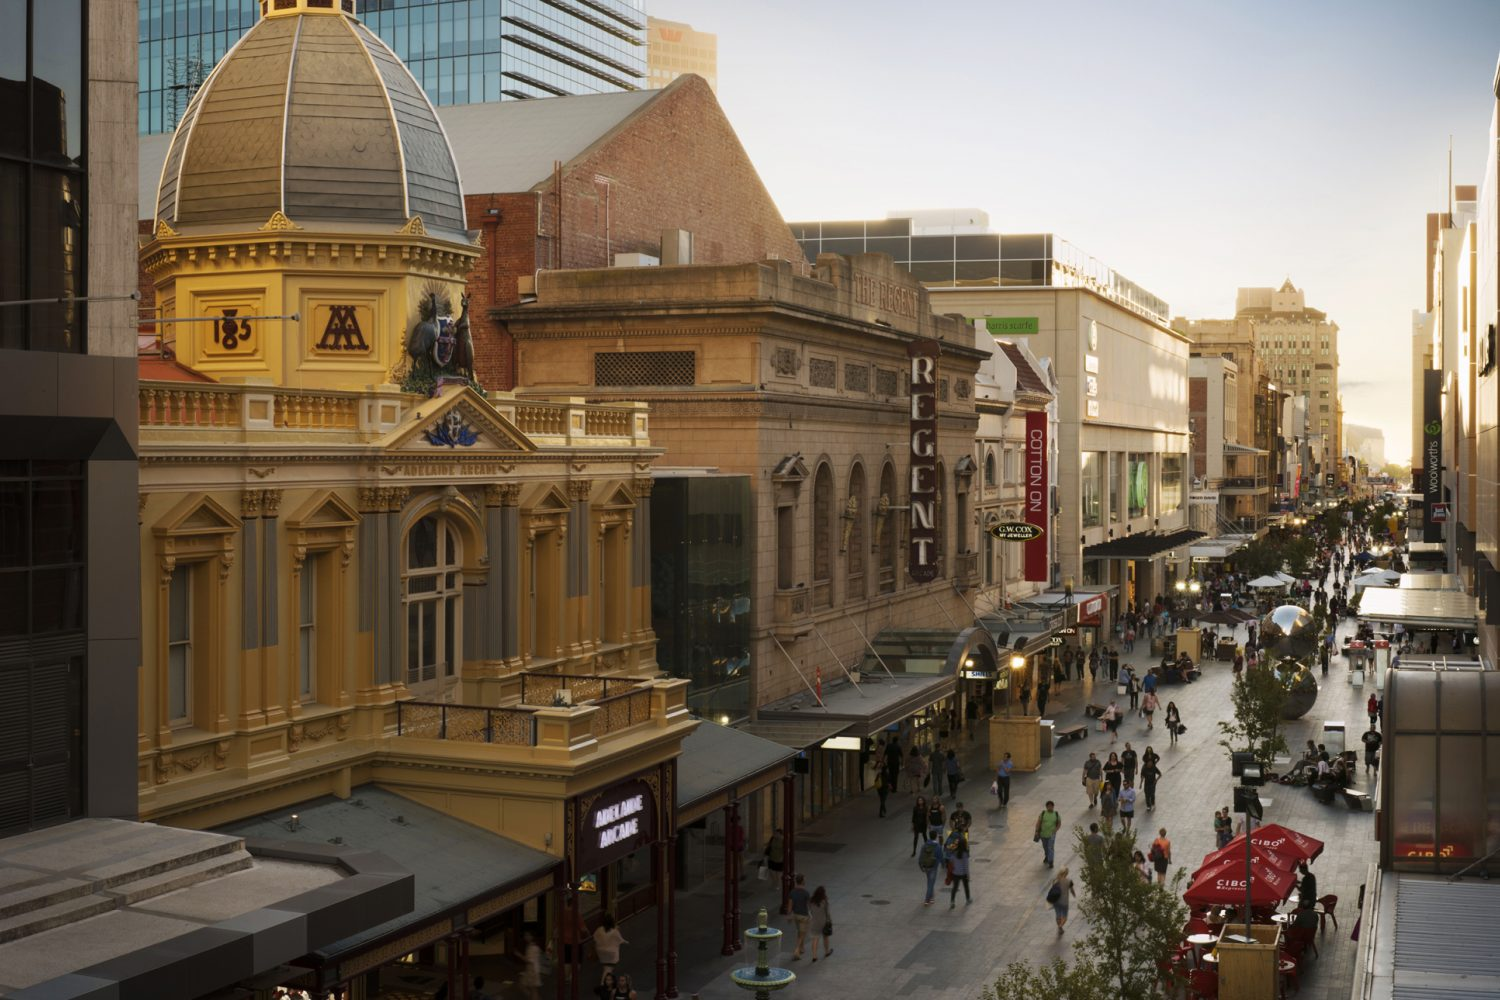 Adelaide: Rundle Mall